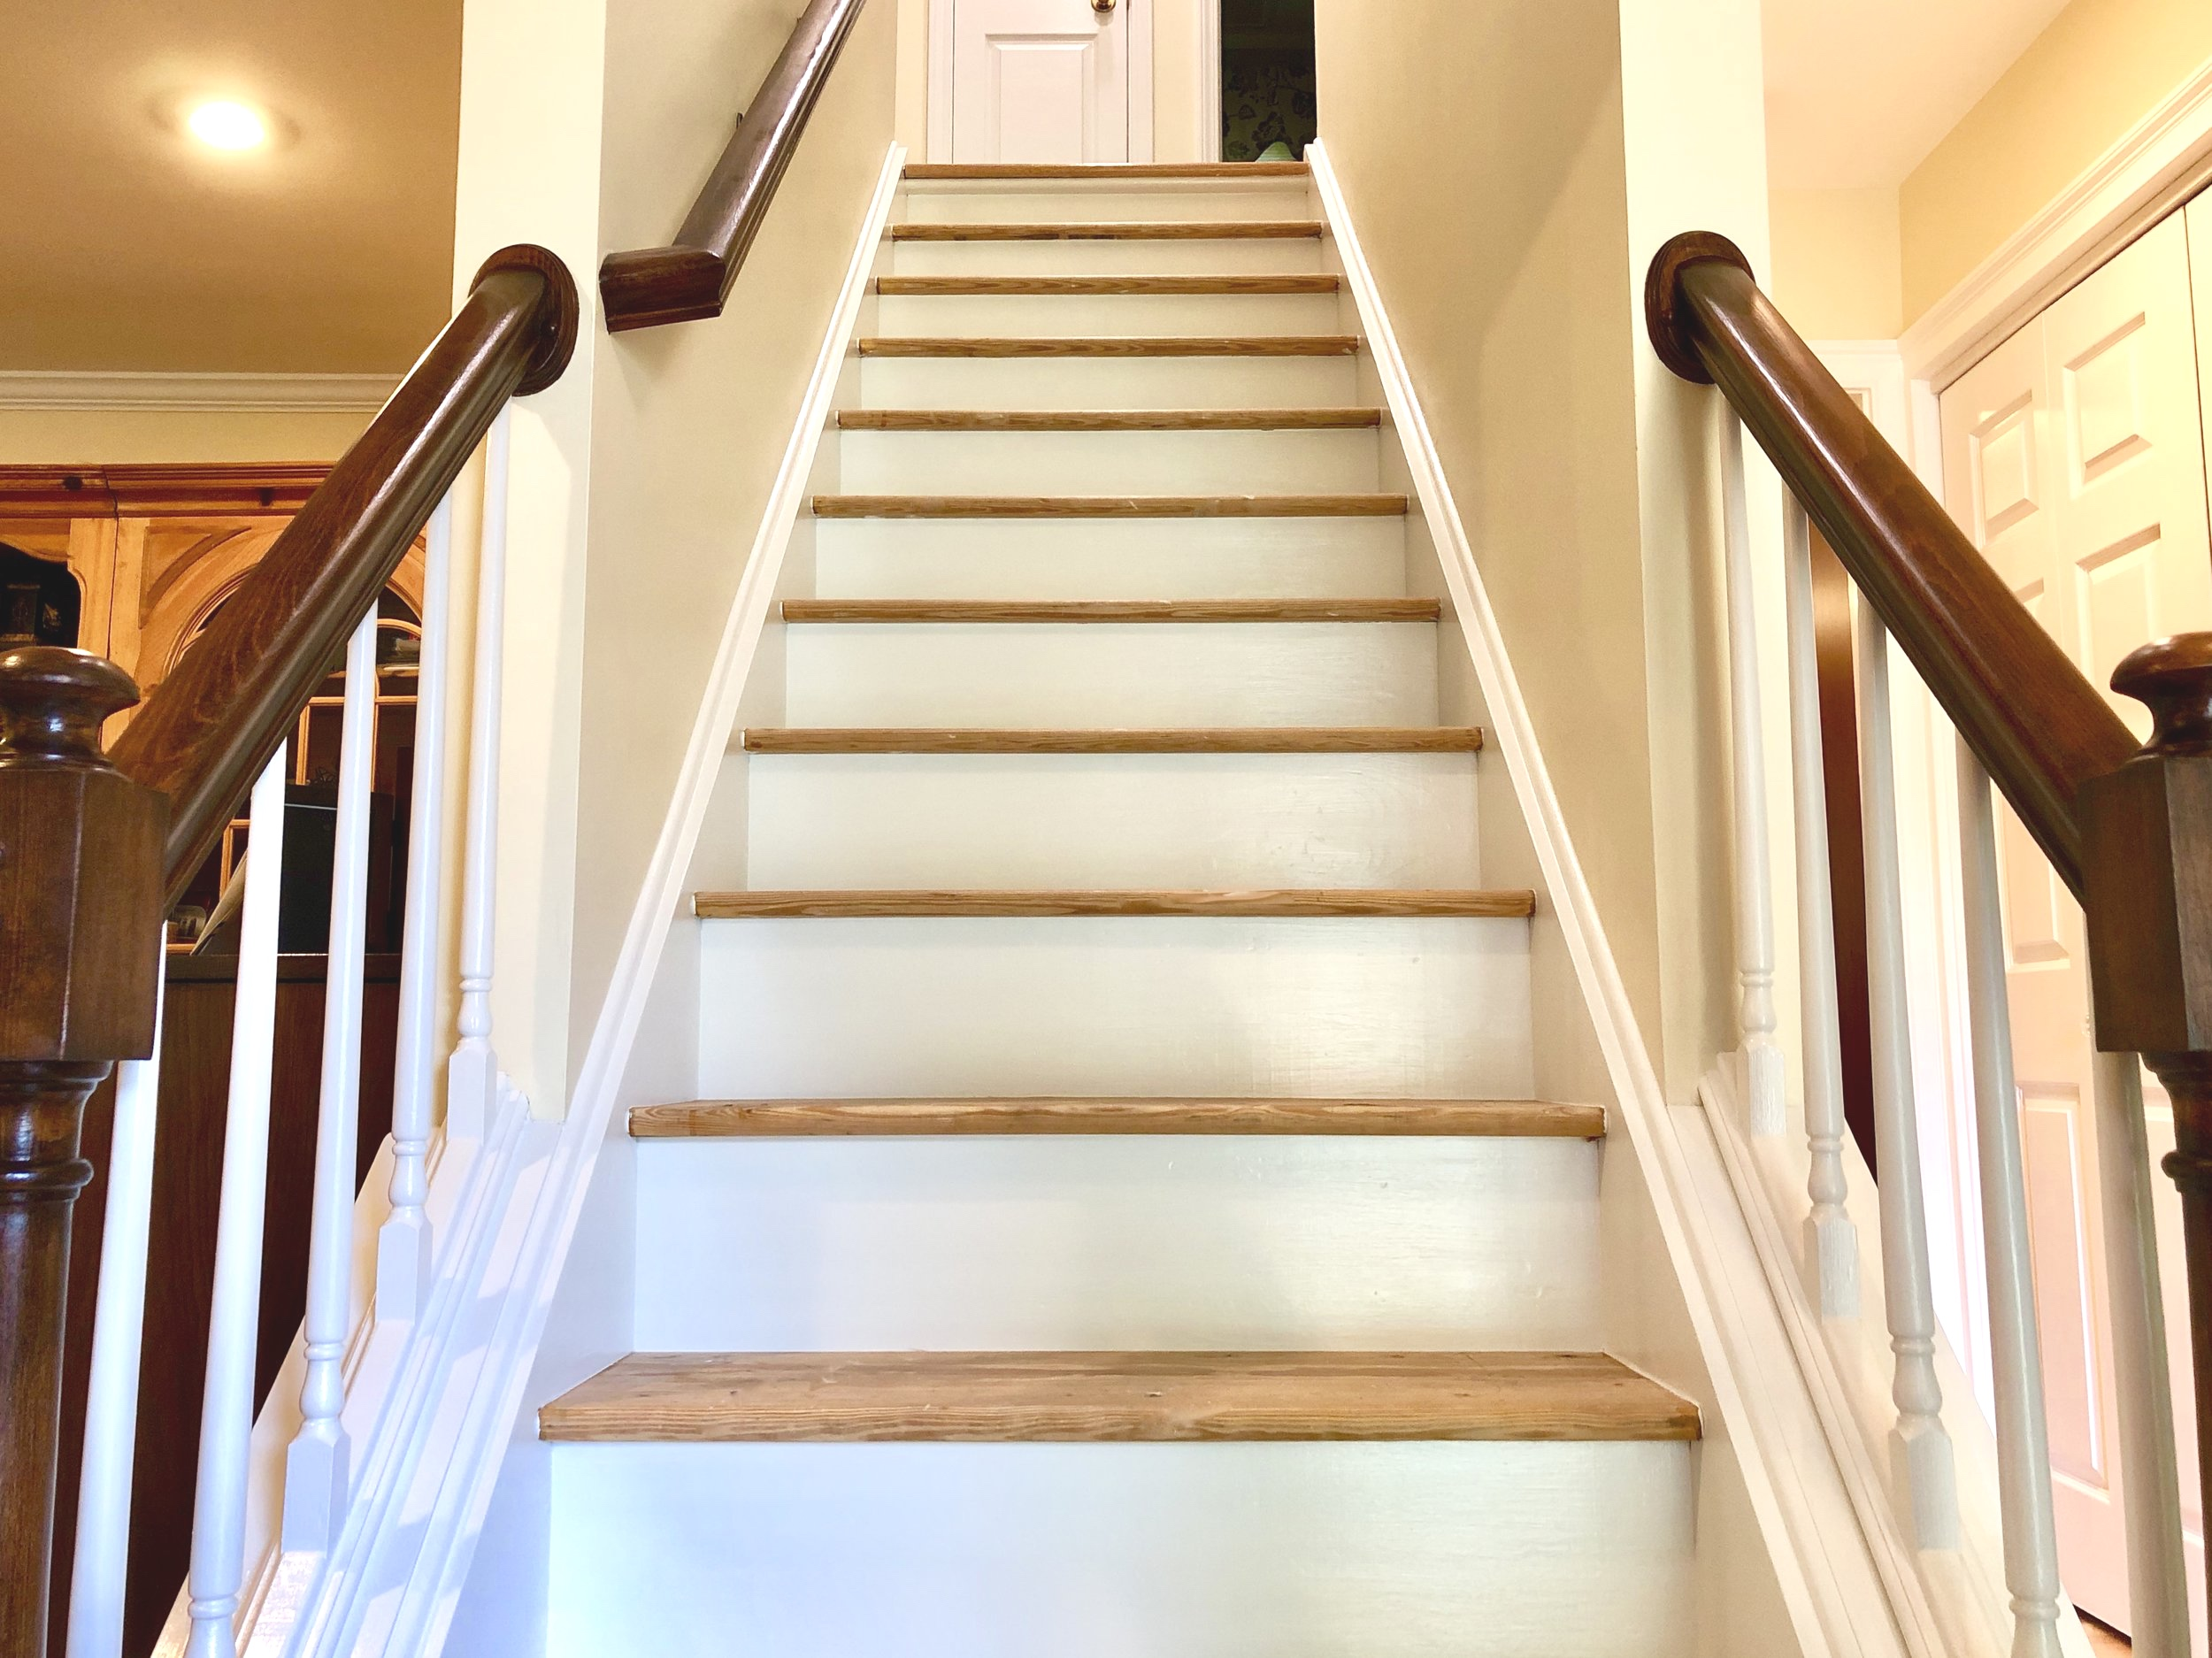 With painting the risers, side molding and spindles white it gave this staircase a new updated look. New treads and carpet runner to be added to complete the makeover.